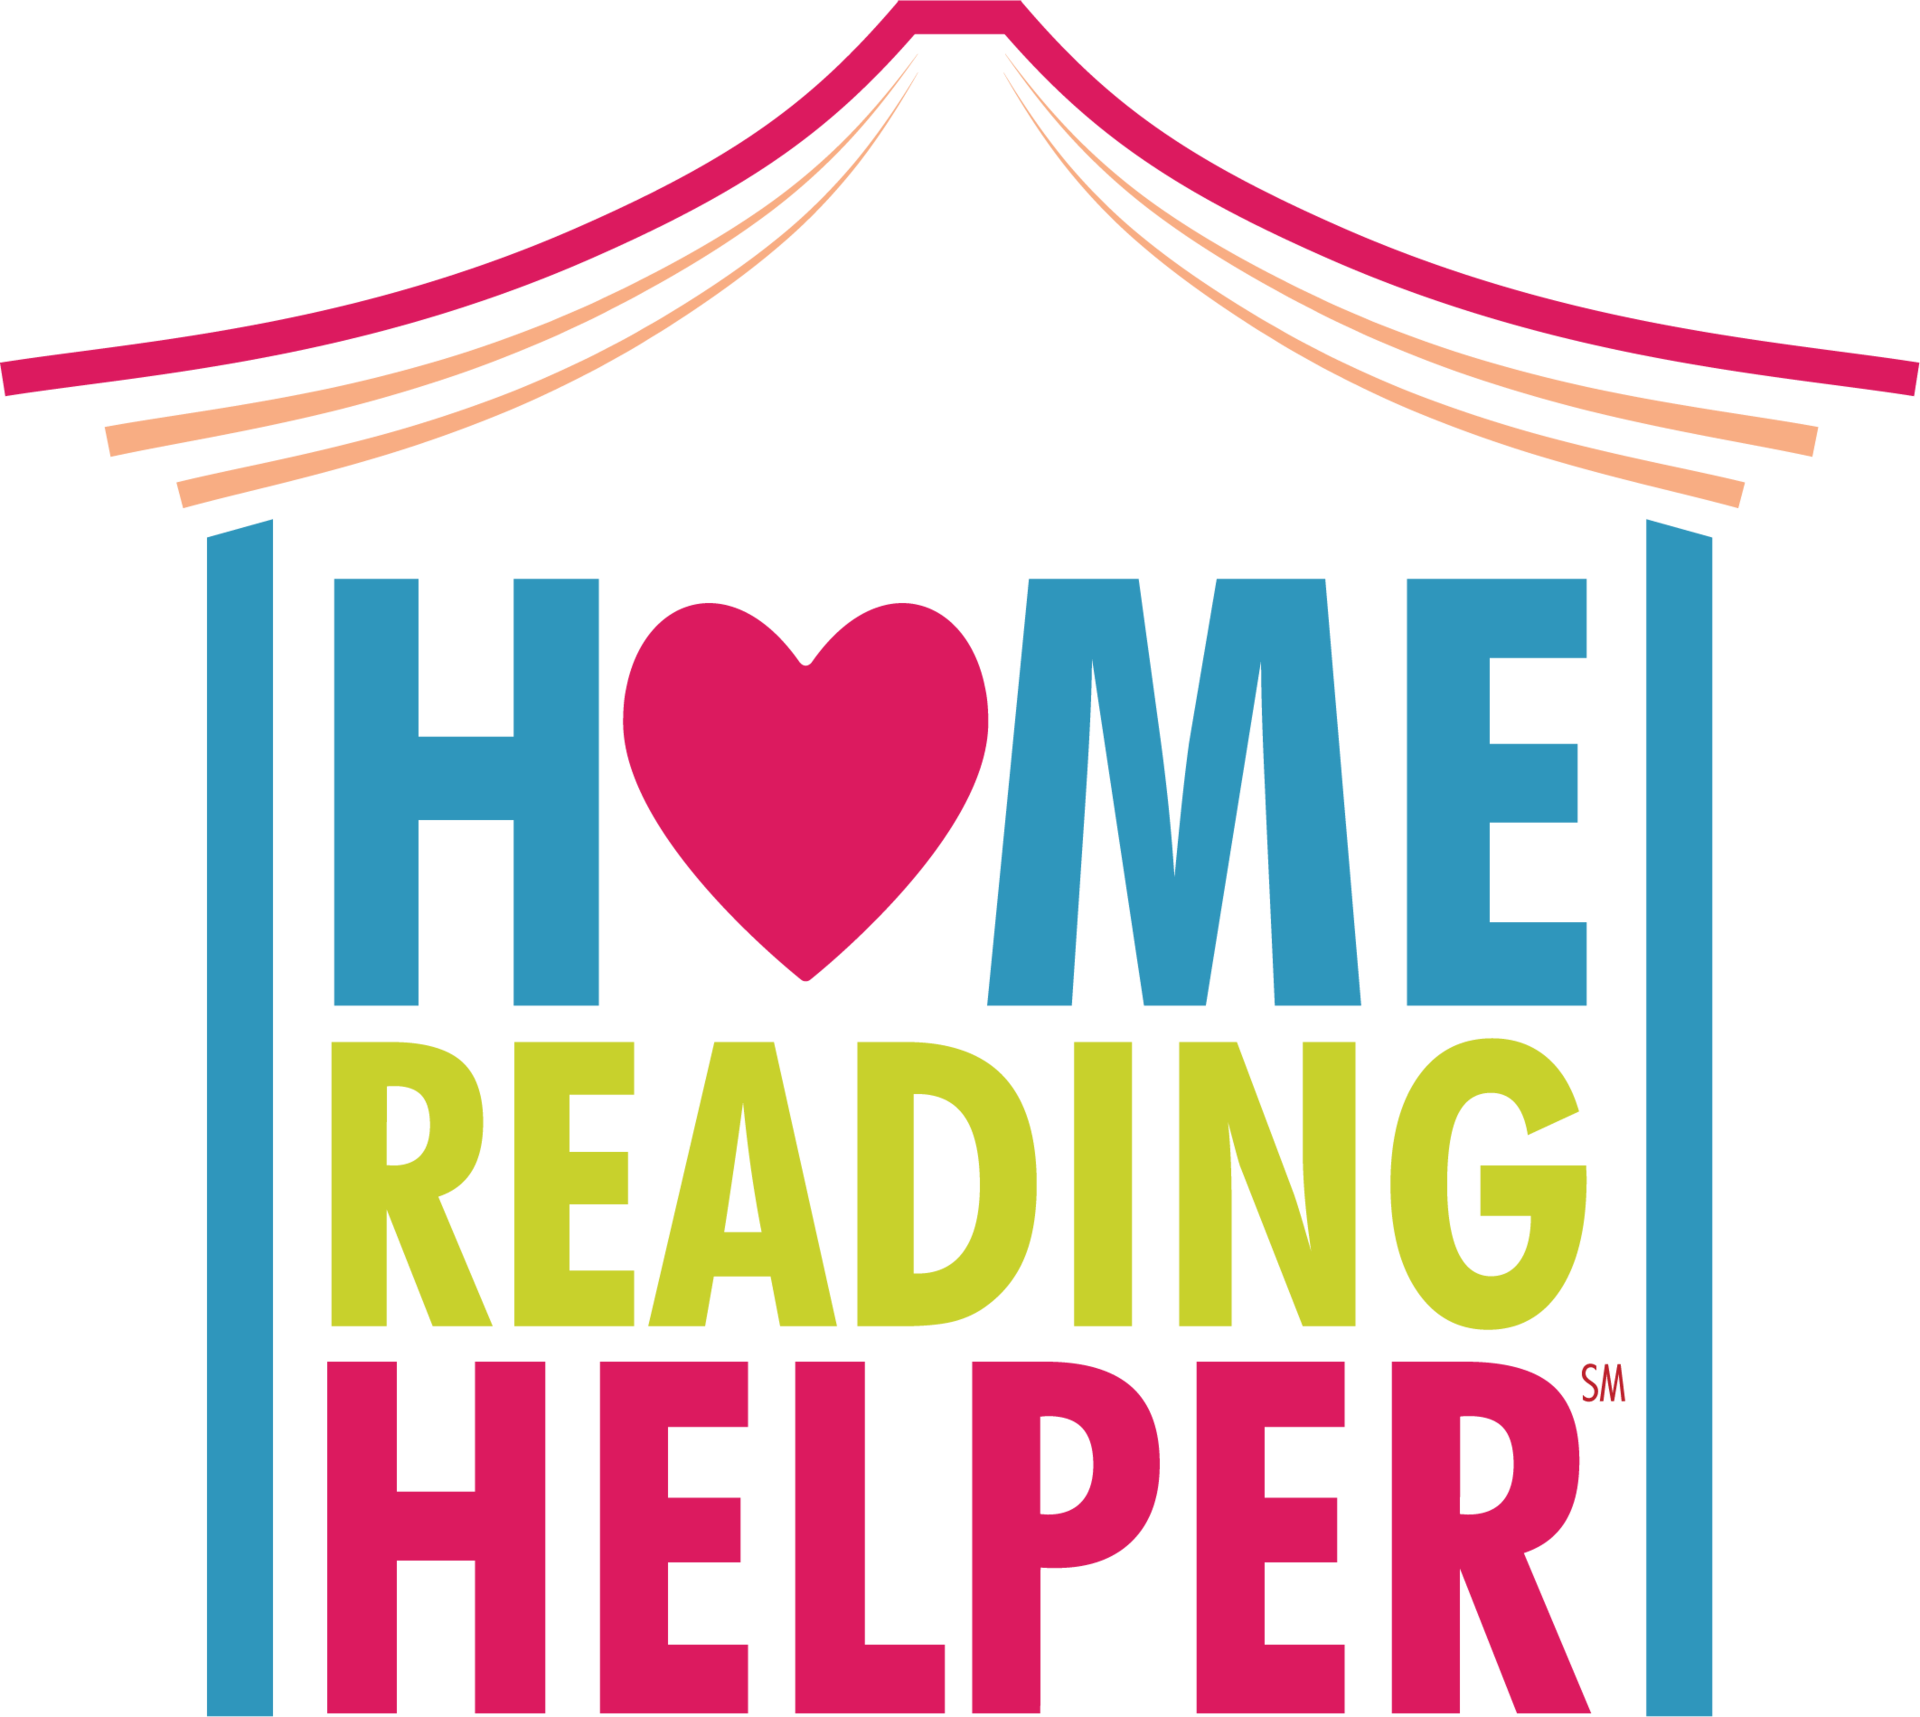 https://www.improvenet.com/a/reading-at-home-for-kids